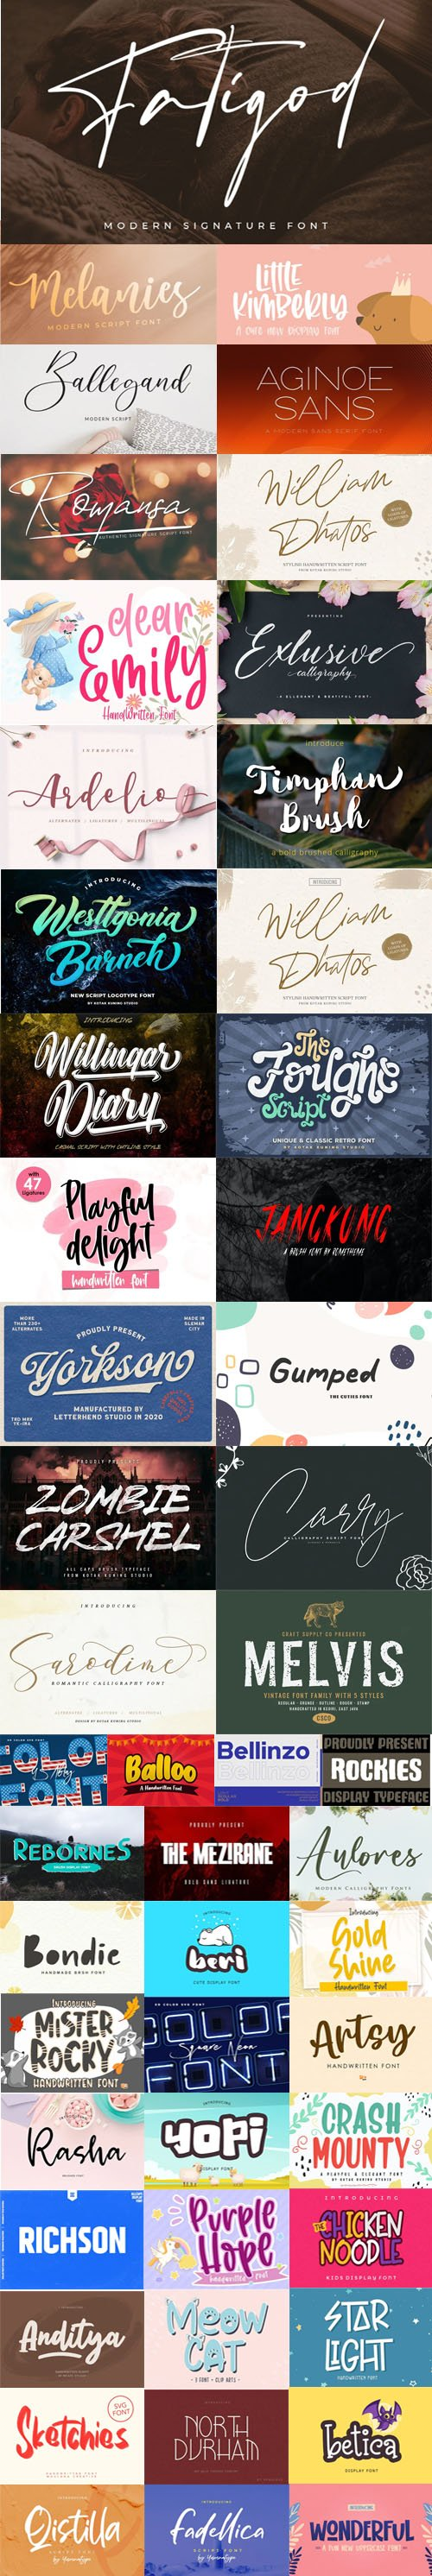 53 New Creative Fonts 2020